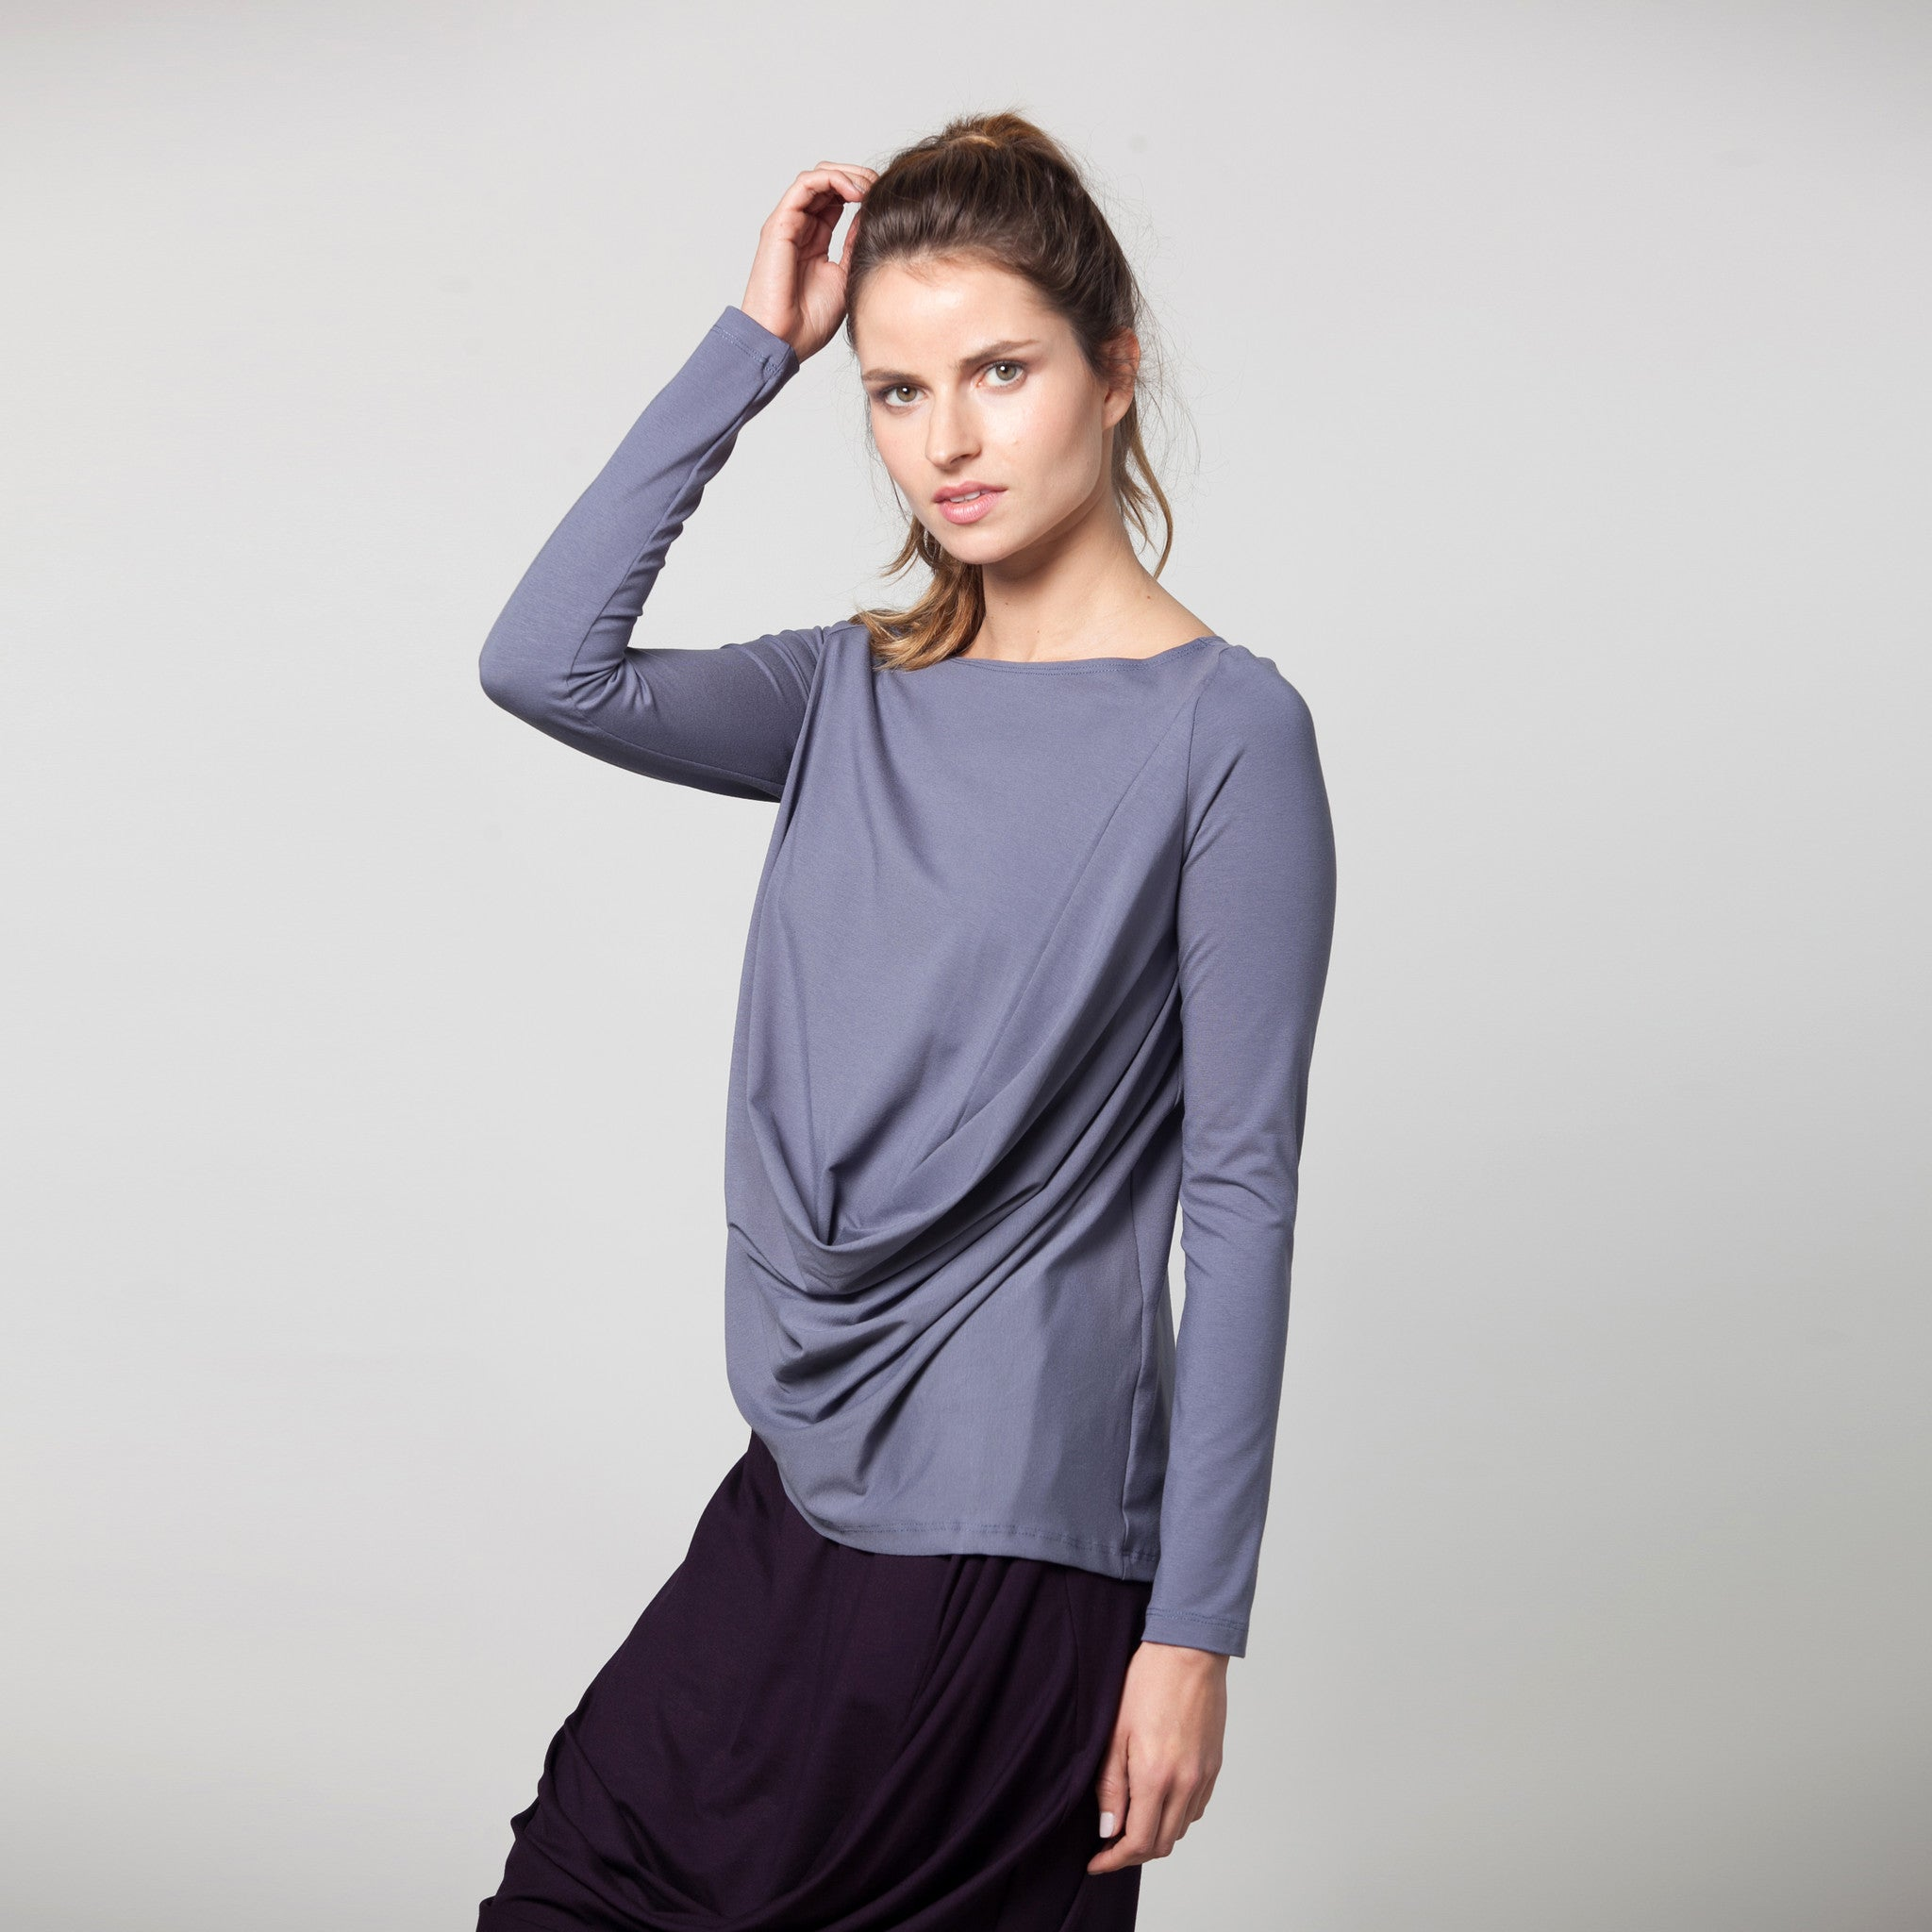 Sample sale- Long sleeve draped jersey top size S color purple grey - DuendeFashion  - 4